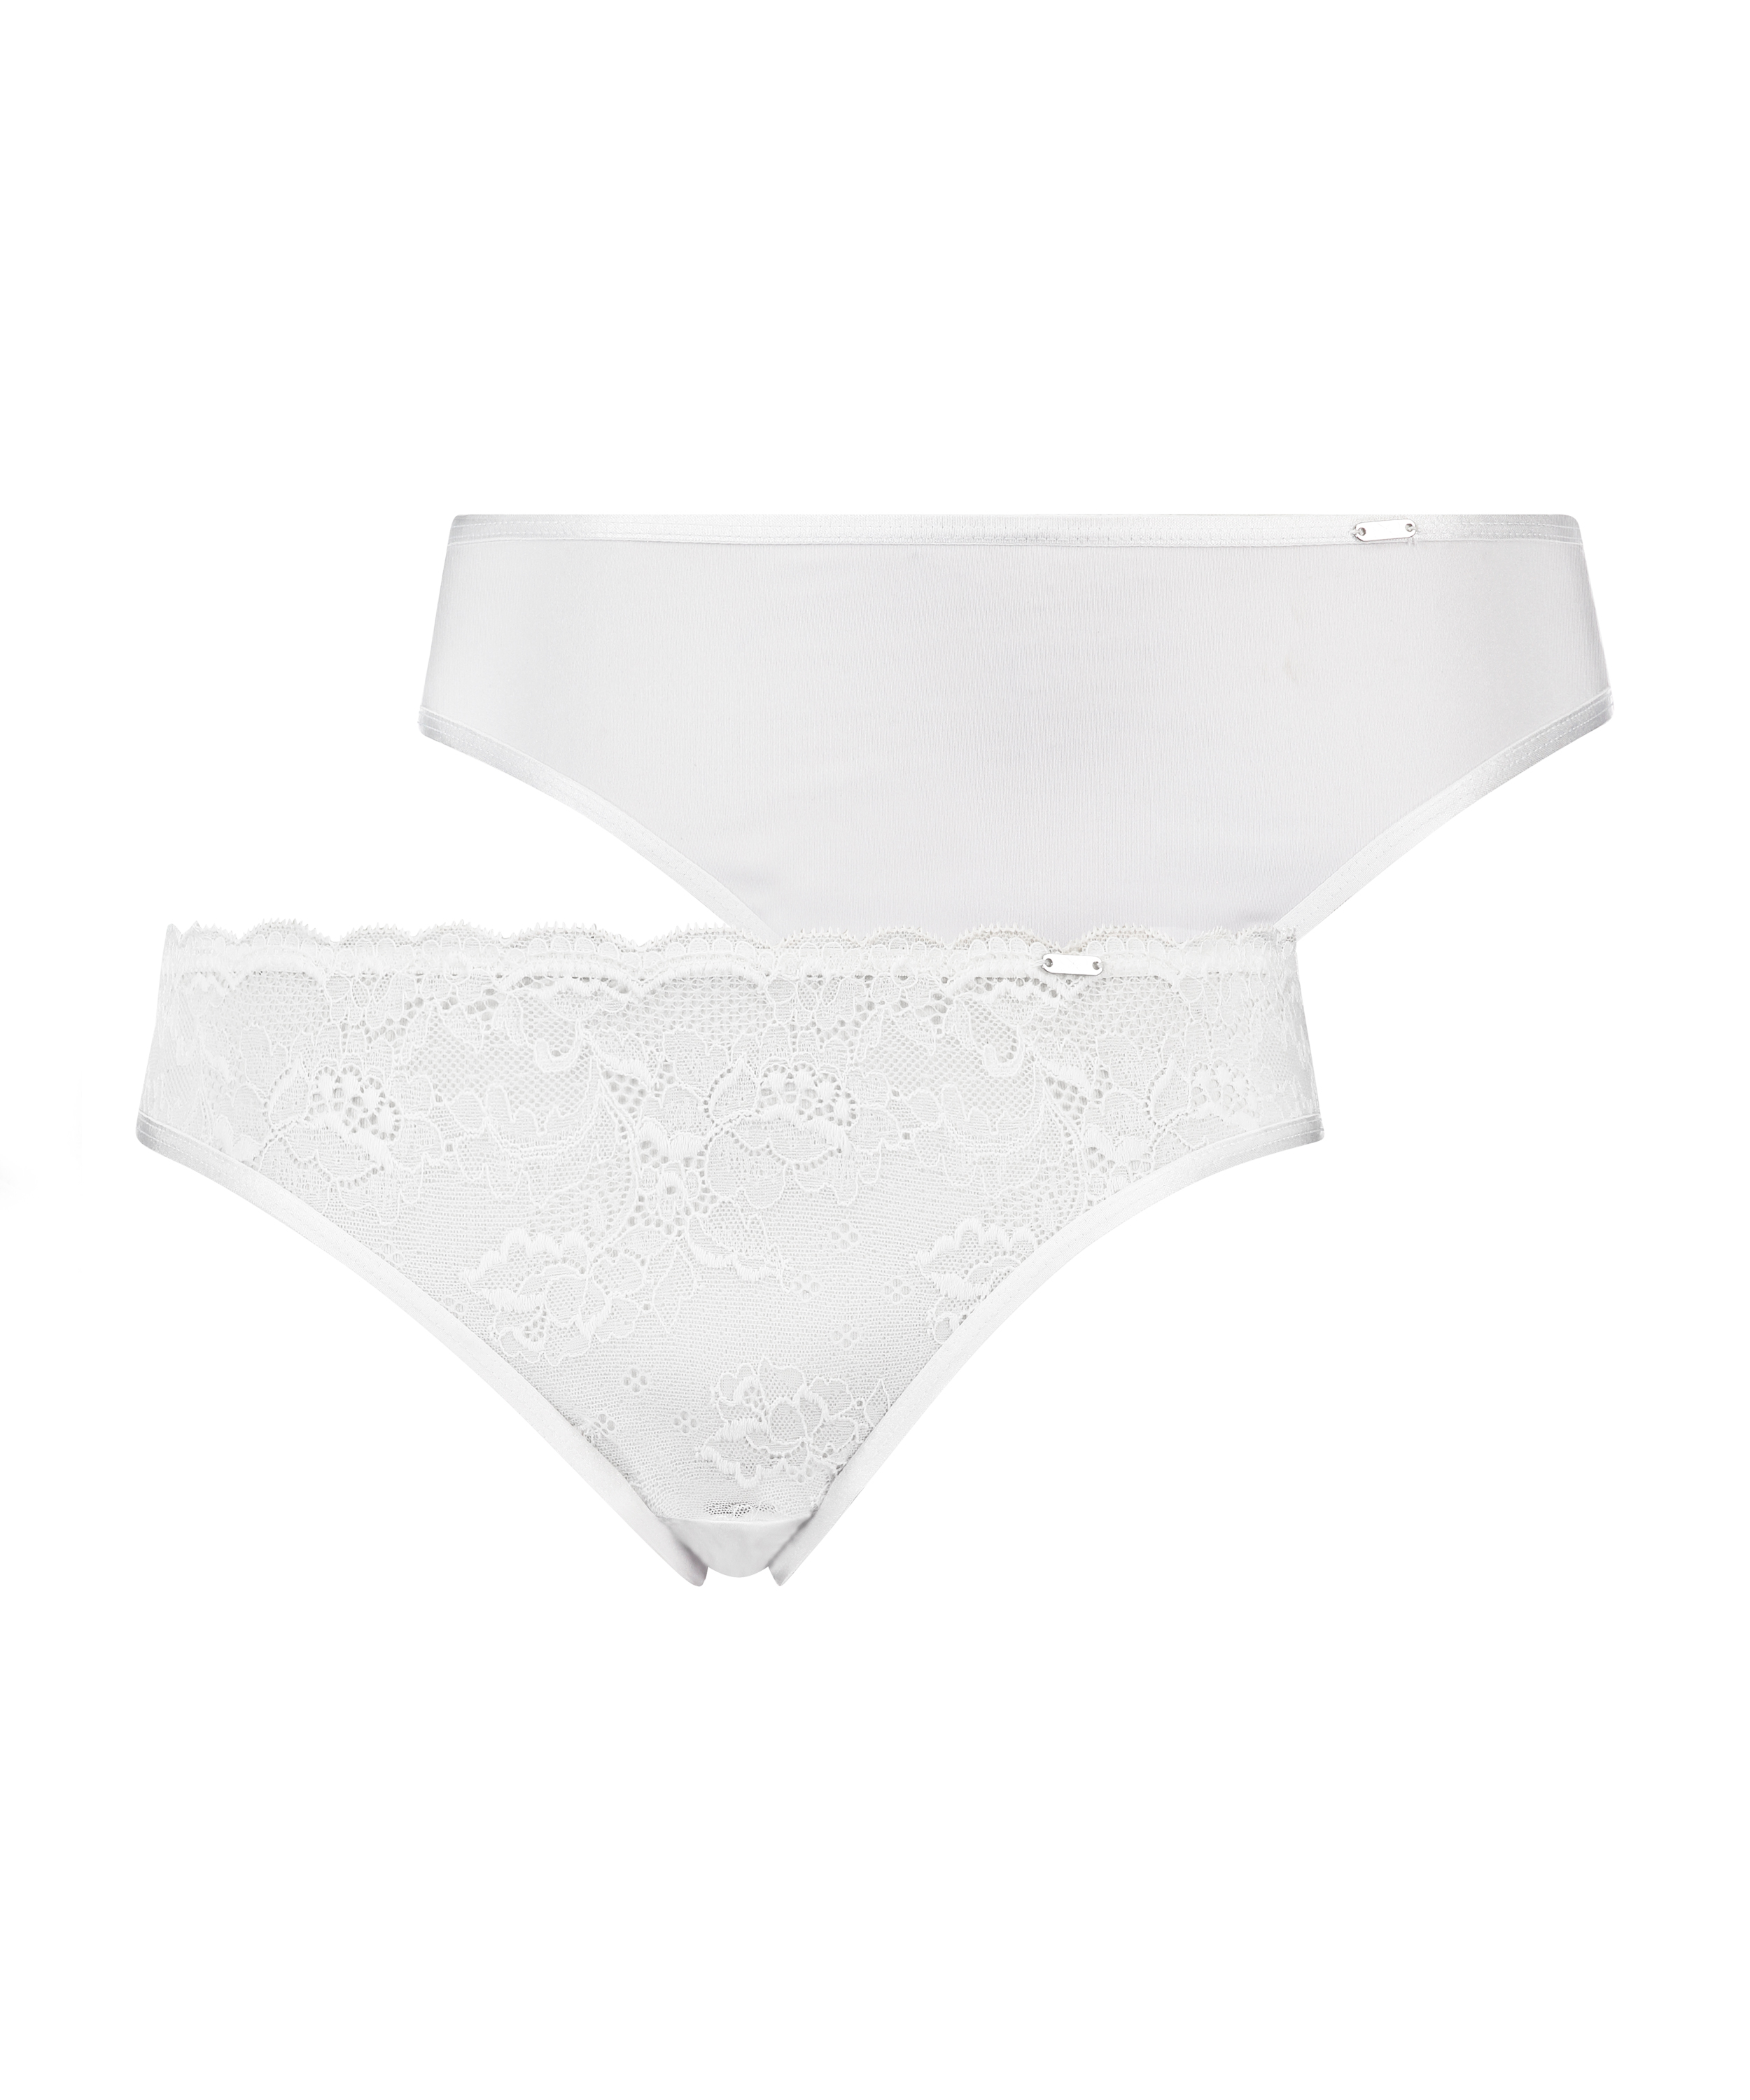 2-pack Angie Knickers, White, main